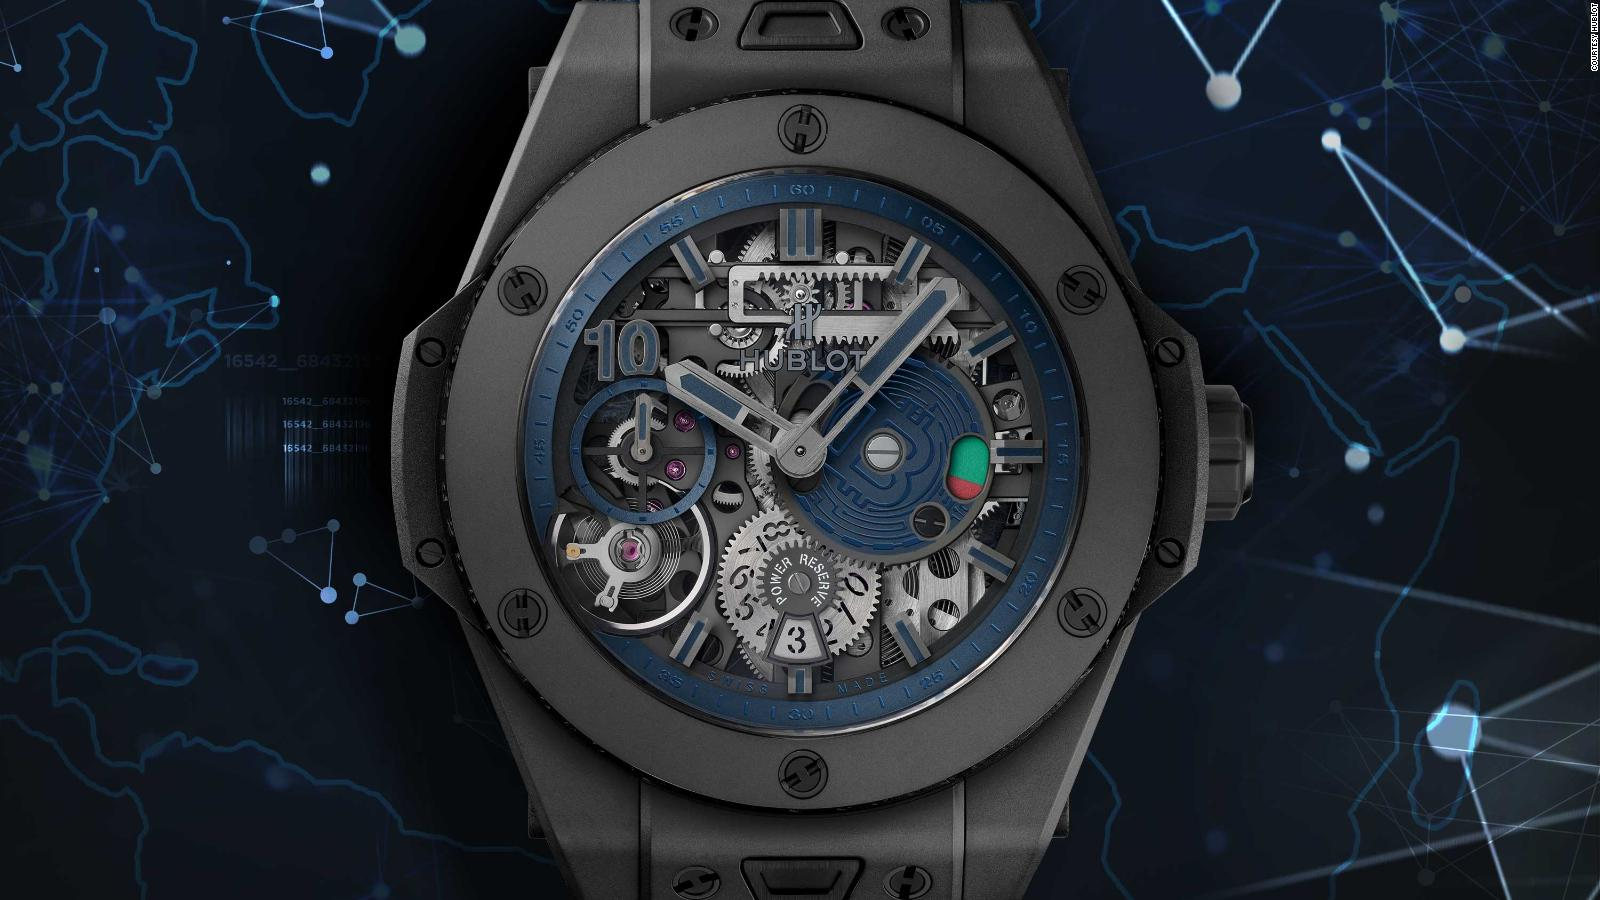 7d4c796d5ab The 10 best luxury watches of 2018 - CNN Style